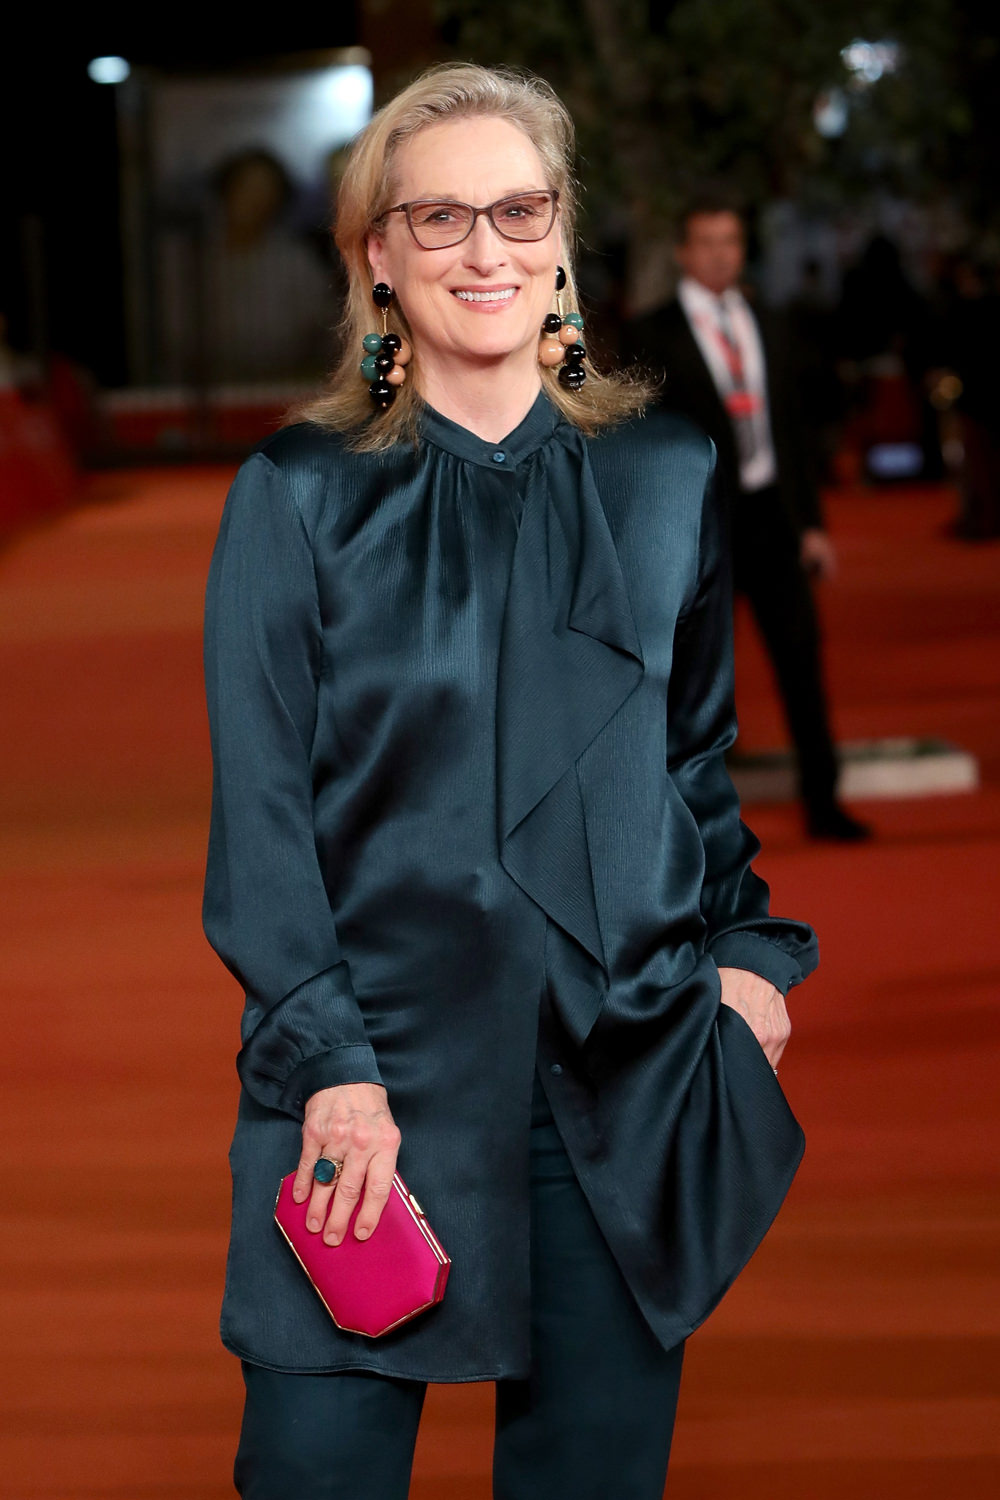 Meryl-Streep-Florence-Foster-Jenkins-Movie-Premiere-Rome-Film-Festival-Red-Carpet-Fashion-Amanda-Pearl-Manri-Tom-Lorenzo-Site-1.jpg